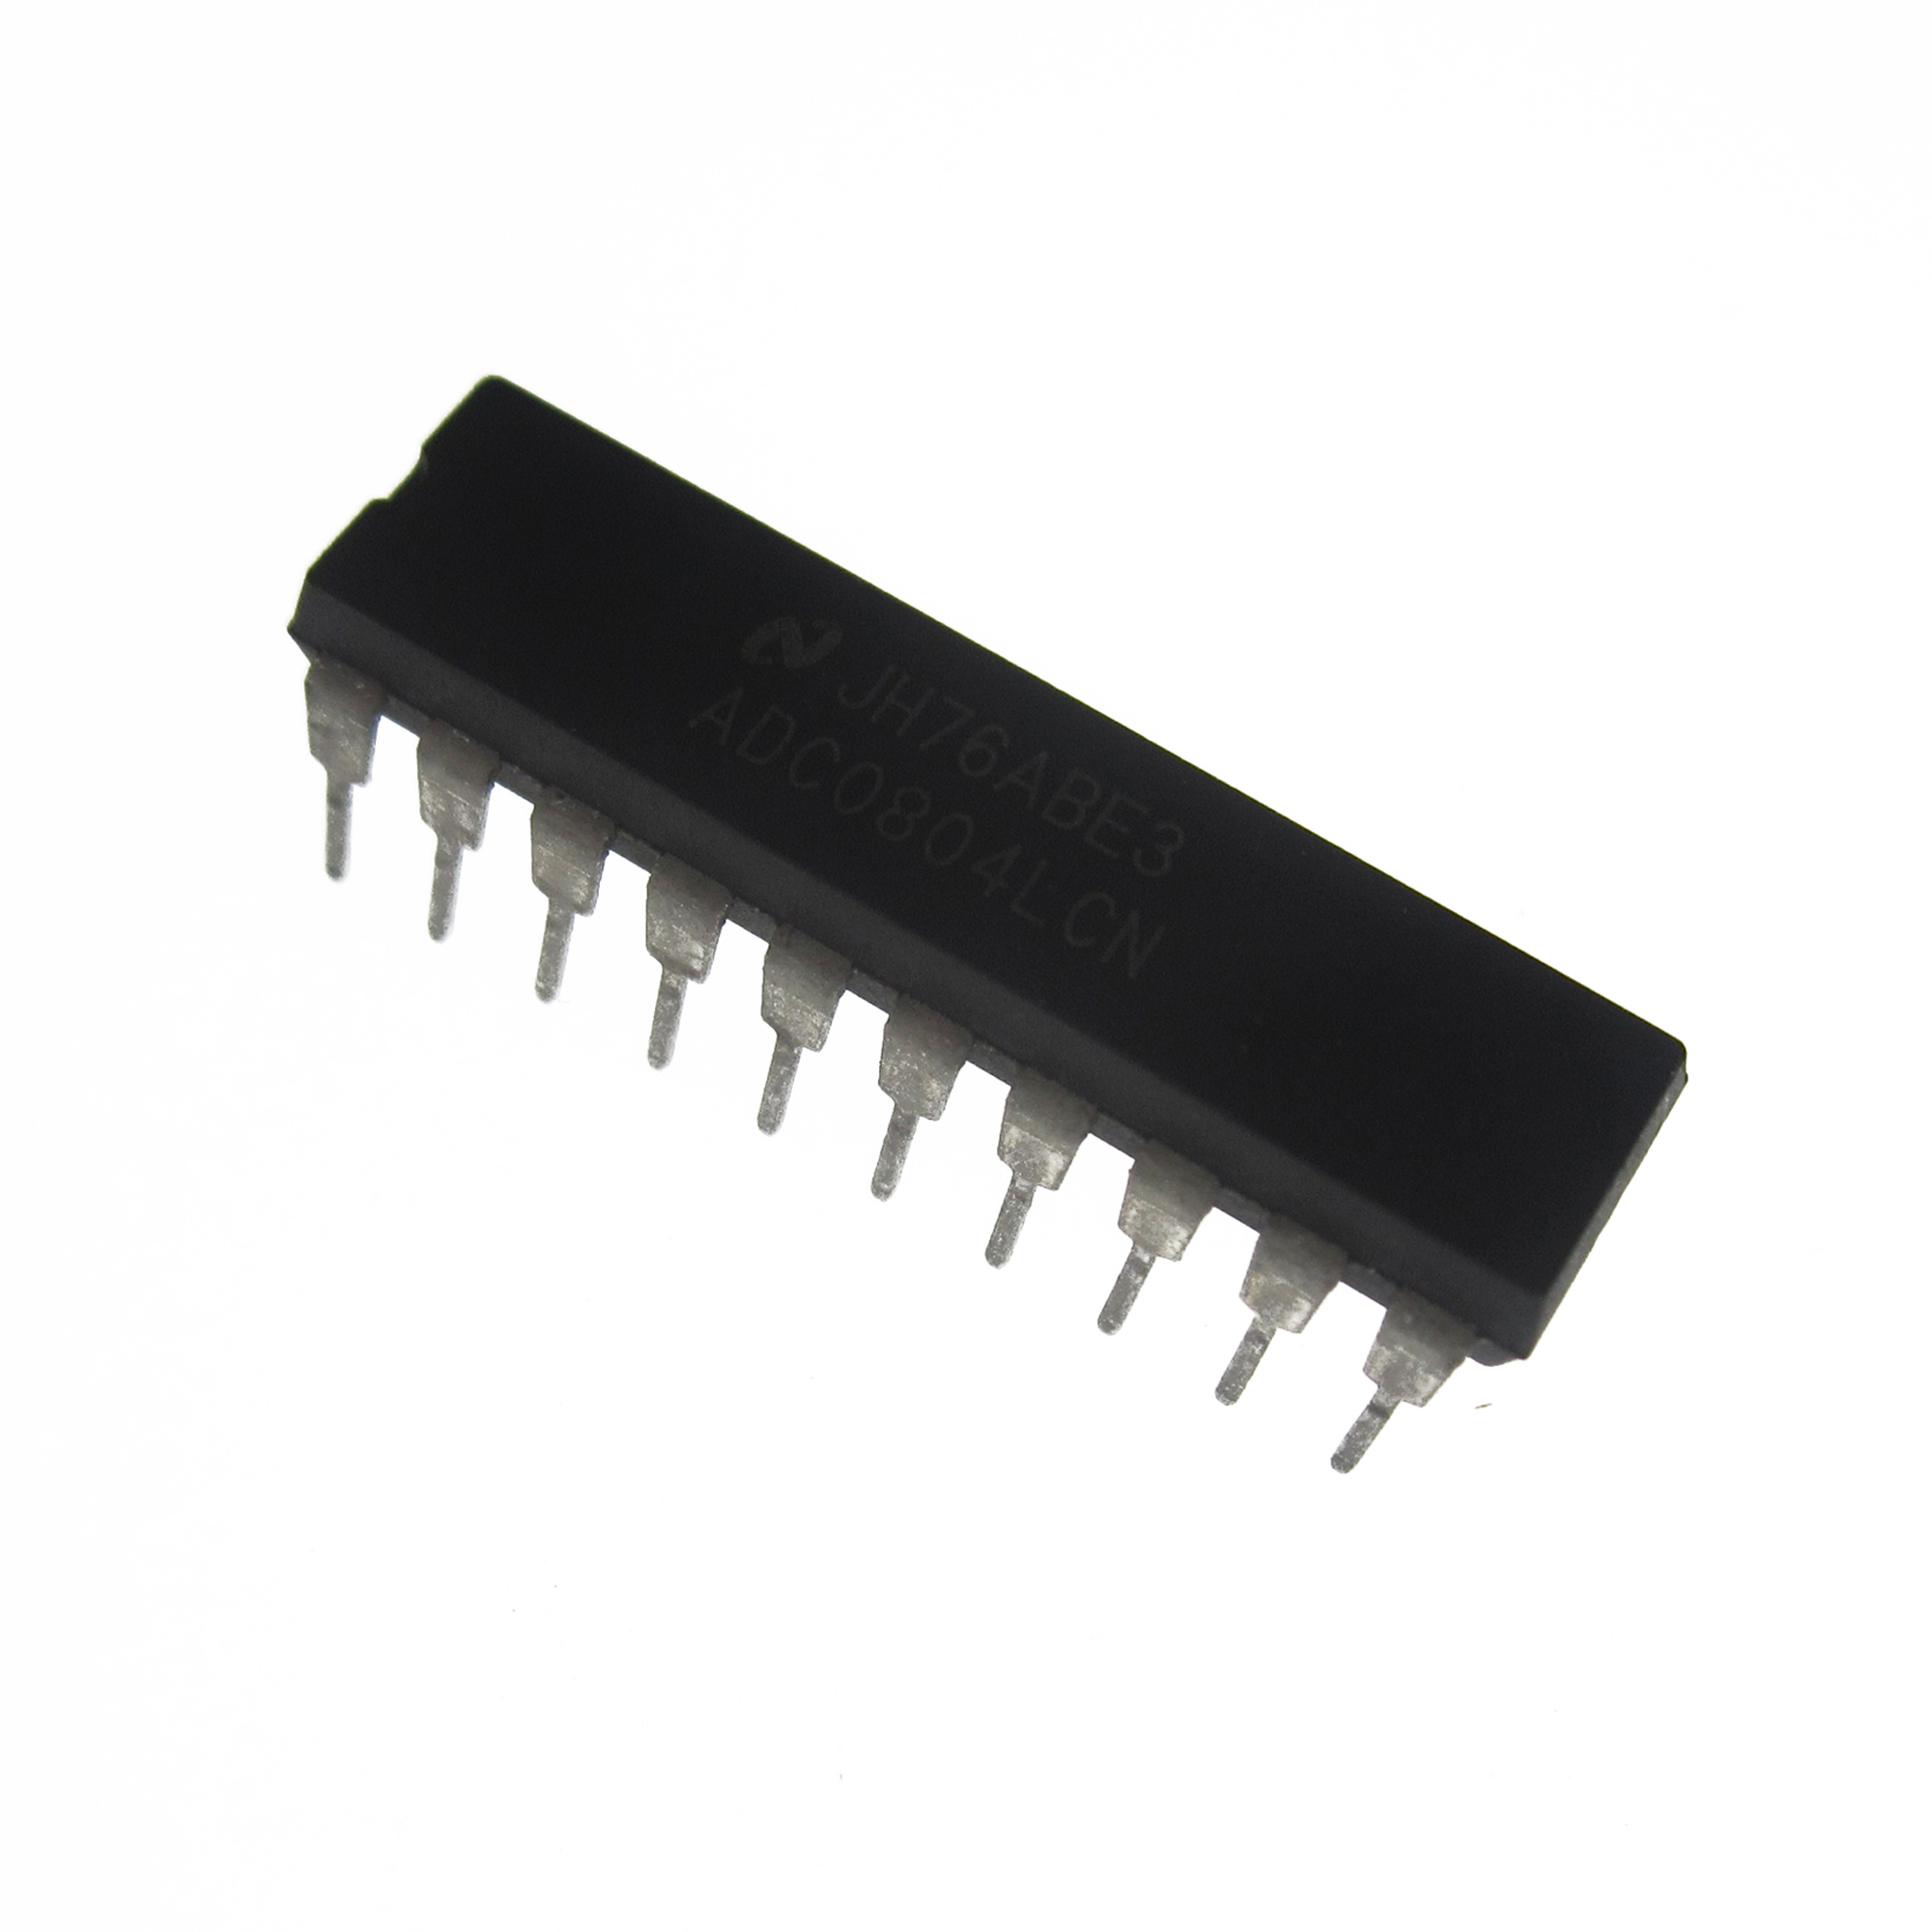 ADC0804 ADC0804LCN CMOS 8-bit Analog-to-Digital A//D converters IC DIY DIP-20